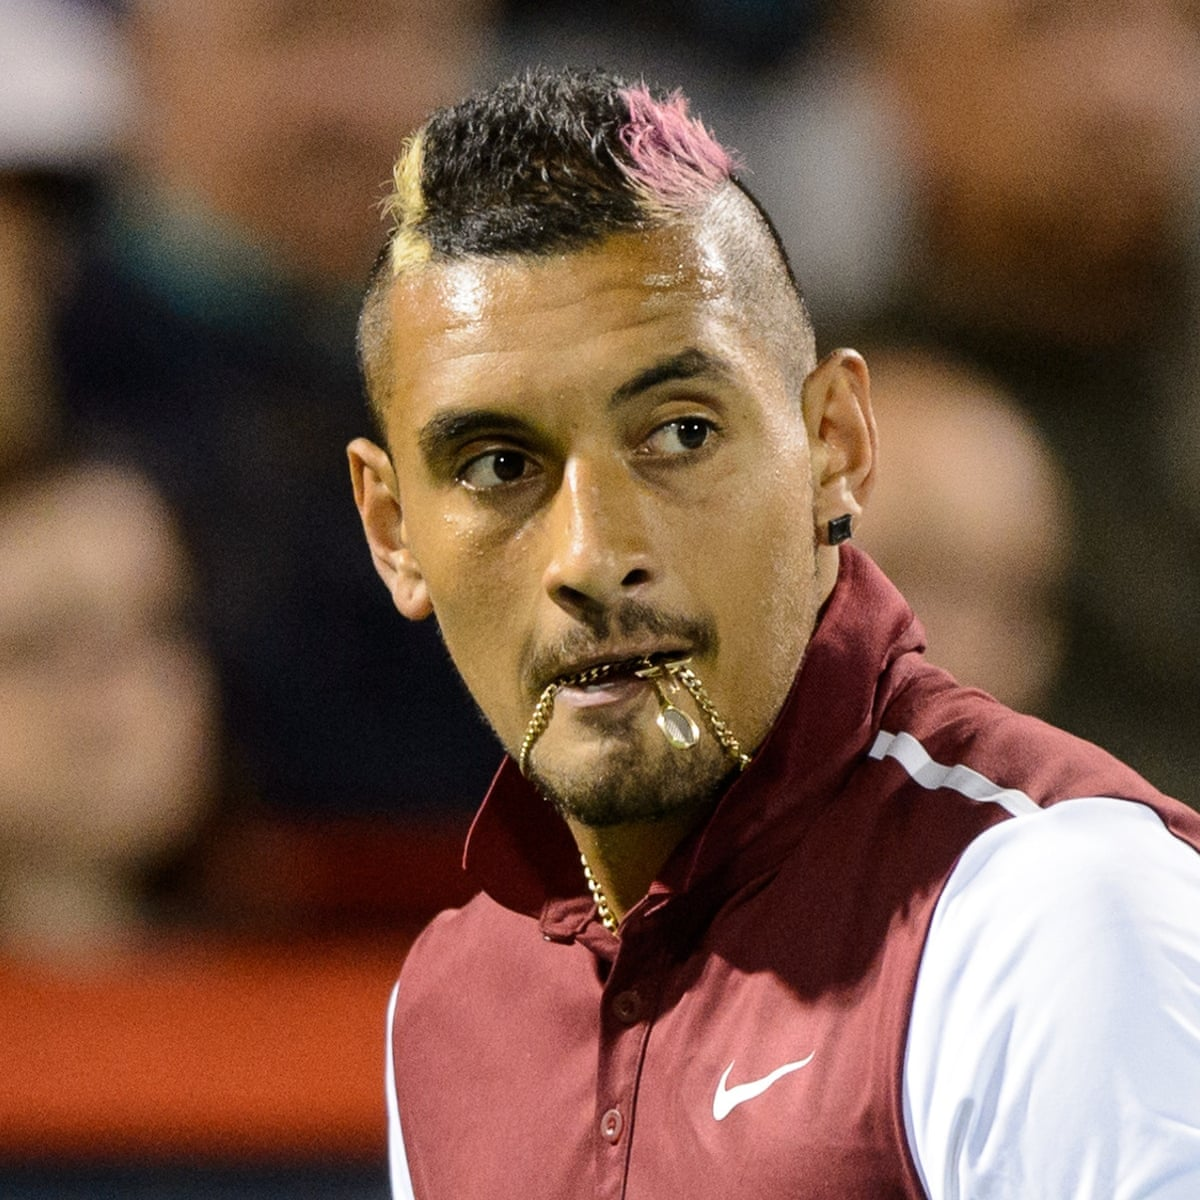 Nick Kyrgios Apologises For Stan Wawrinka Comment After Atp Fines Him 10 000 Nick Kyrgios The Guardian